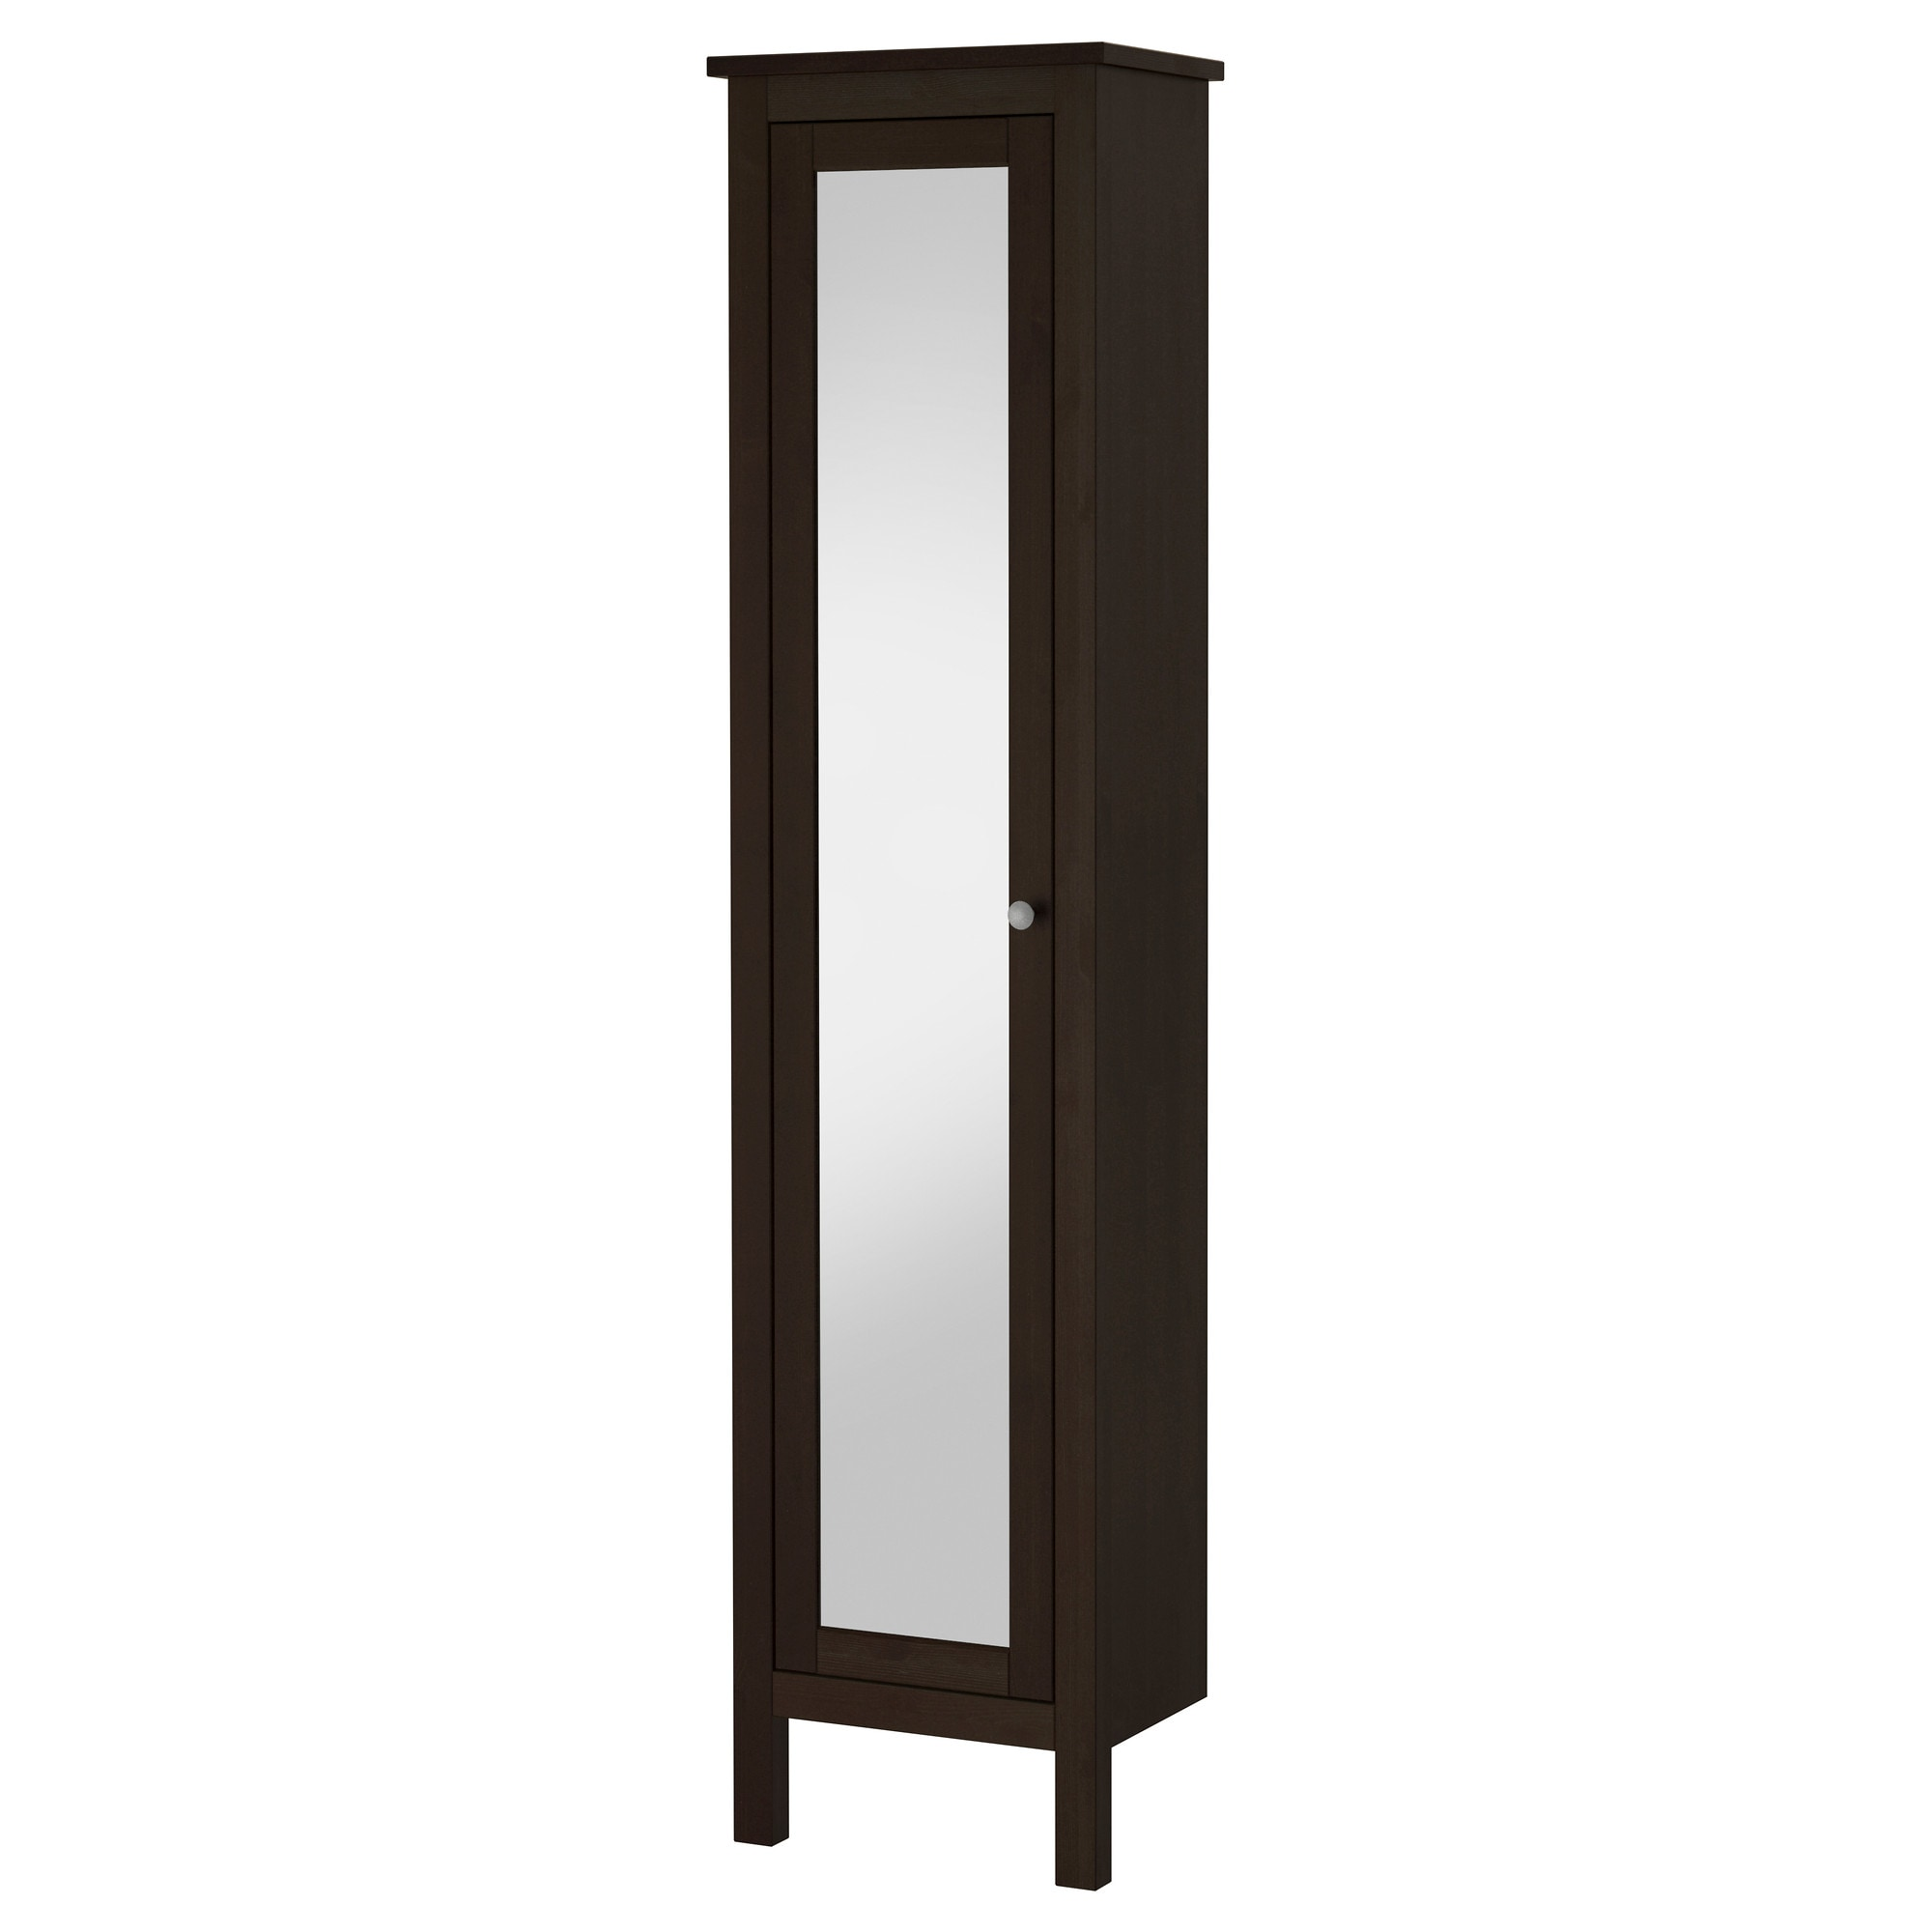 Tall skinny cabinets bar cabinet for Tall skinny mirror